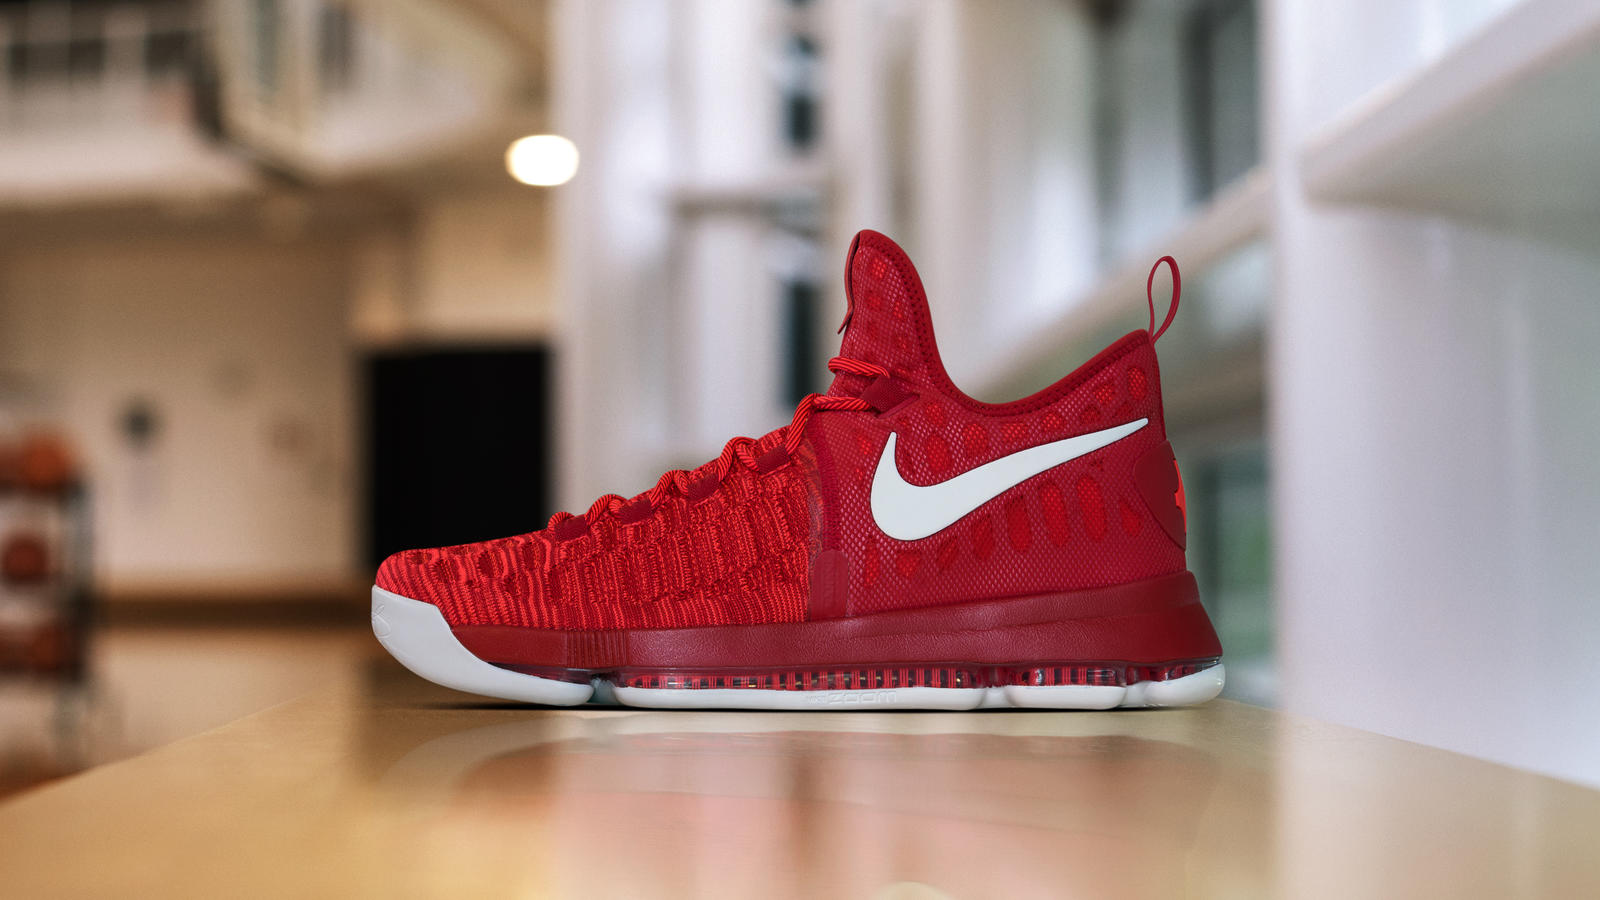 This New Colorway of the Nike KD 9 is Now Available-1